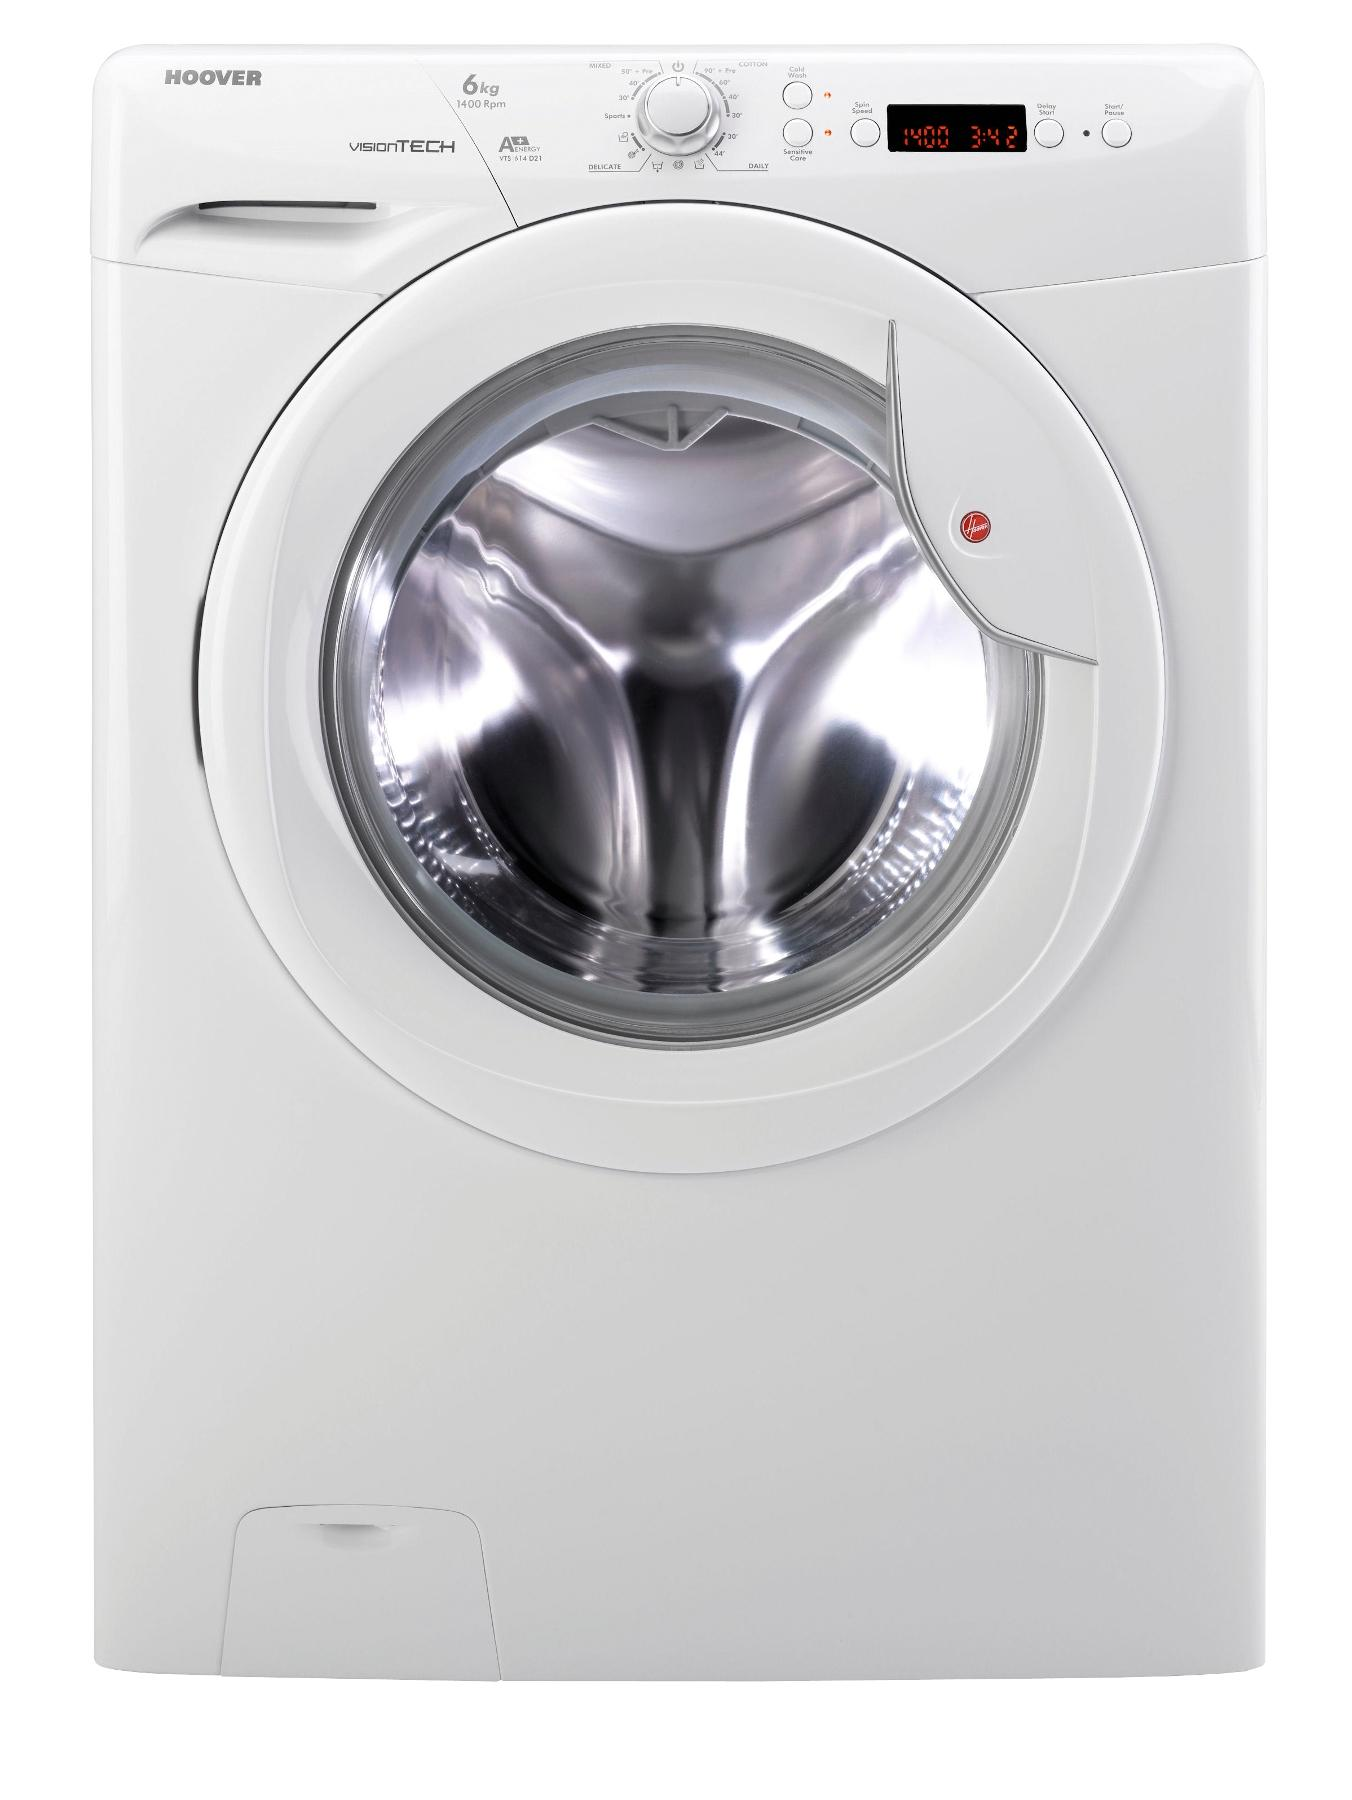 VTS614D21 1400 Spin, 6kg Load Washing Machine - White